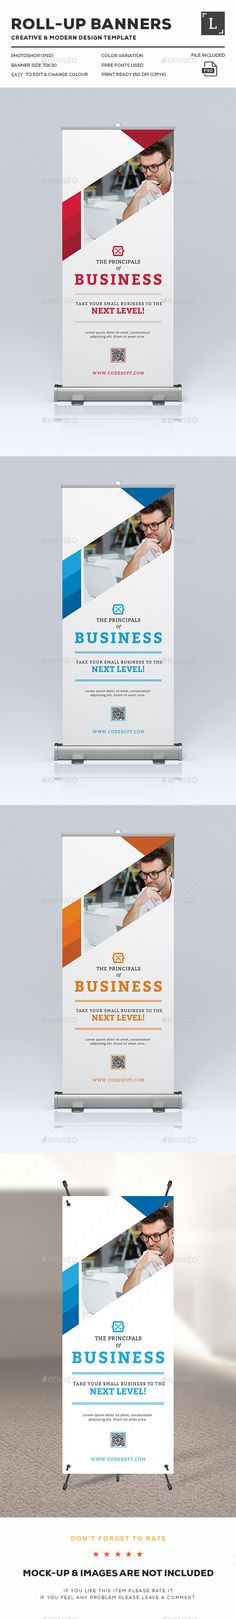 Corporate Roll-Up Banners Template PSD. Download here: http://graphicriver.net/item/corporate-rollup-banners/15927149?ref=ksioks